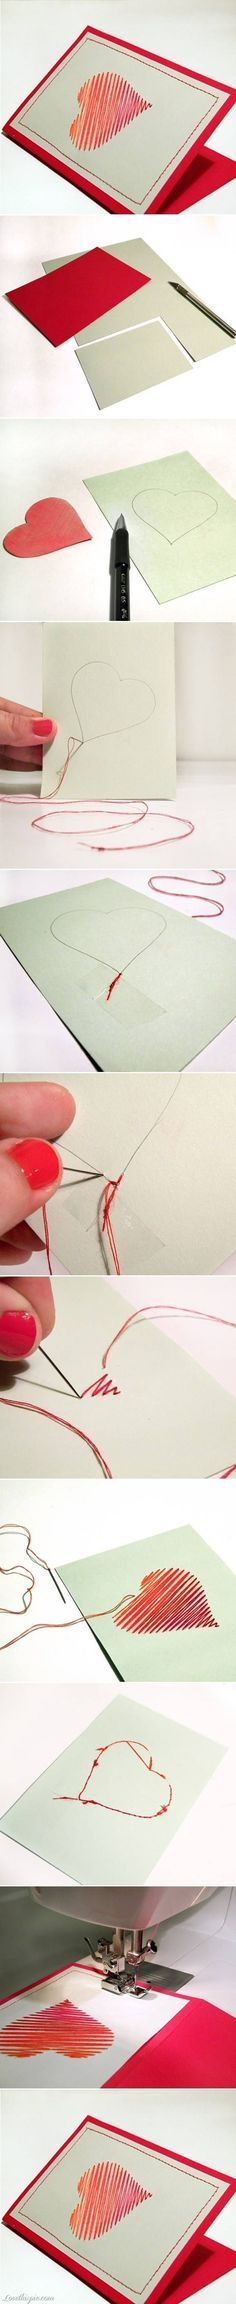 Heart Card  crafts home made easy crafts craft idea crafts ideas  ideas  crafts  idea do it yourself  projects  craft handmade  sewing  gifts craft gifts